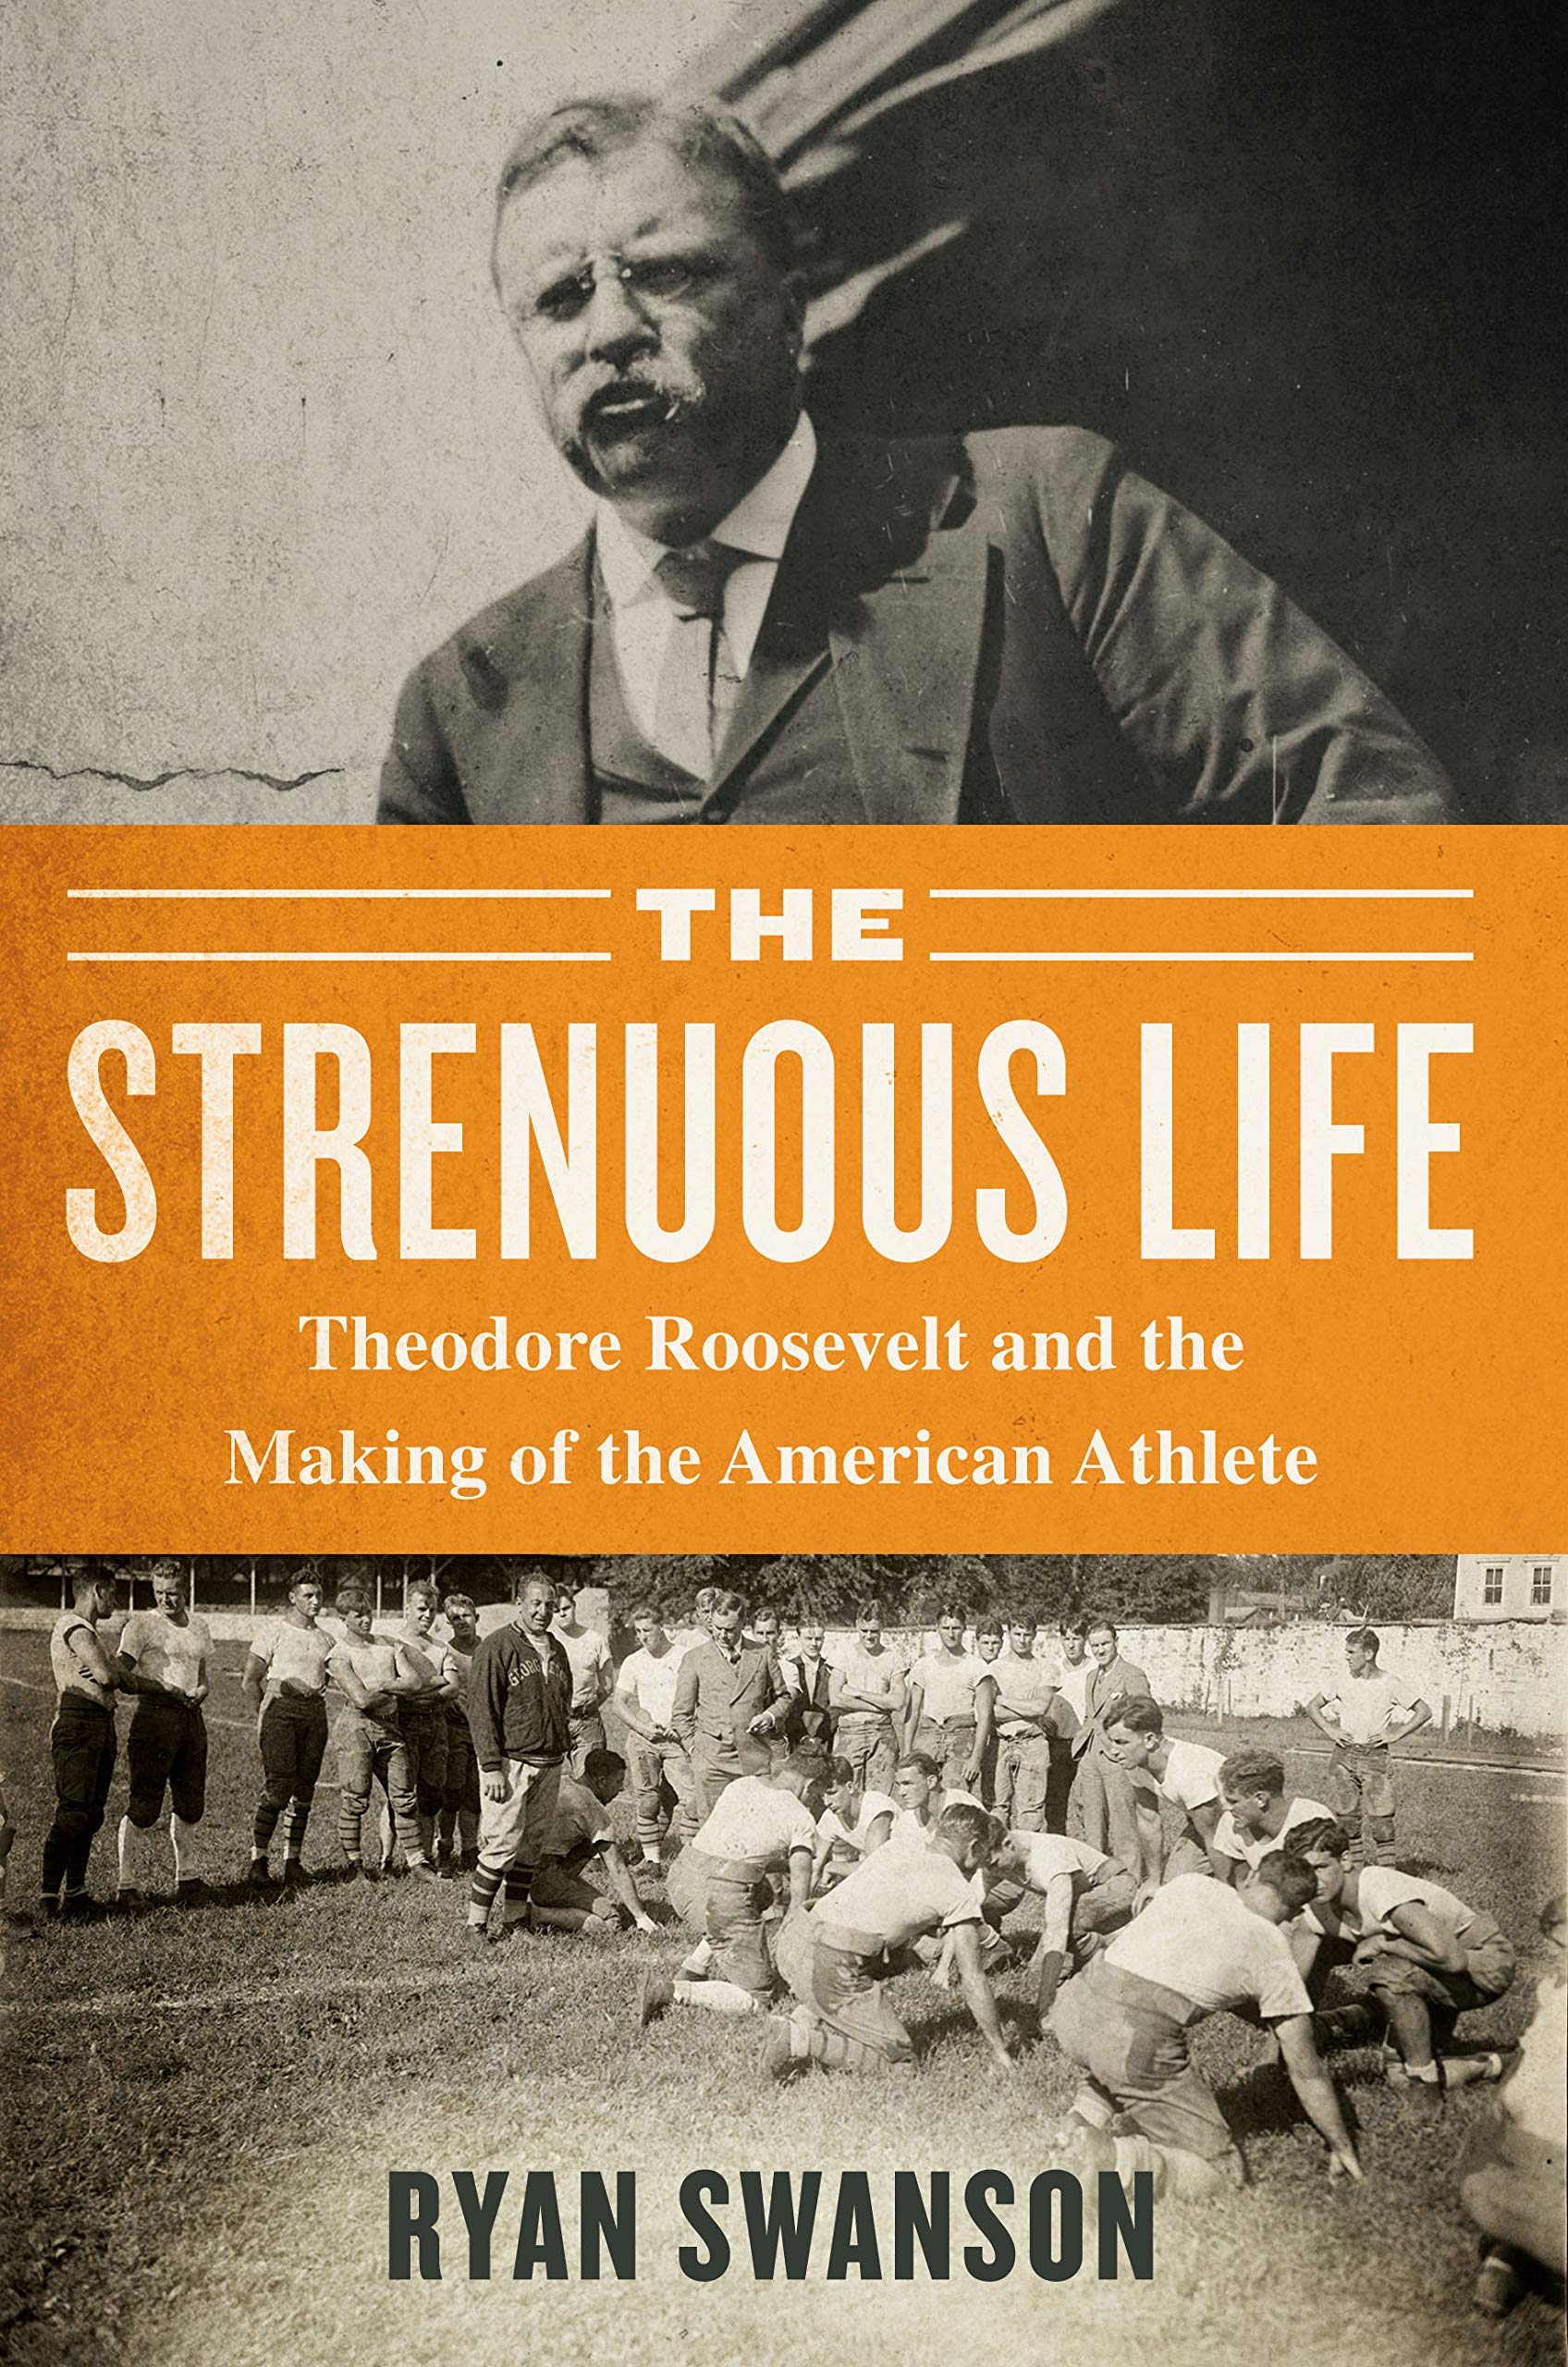 Amazon.com: The Strenuous Life: Theodore Roosevelt and the Making ...